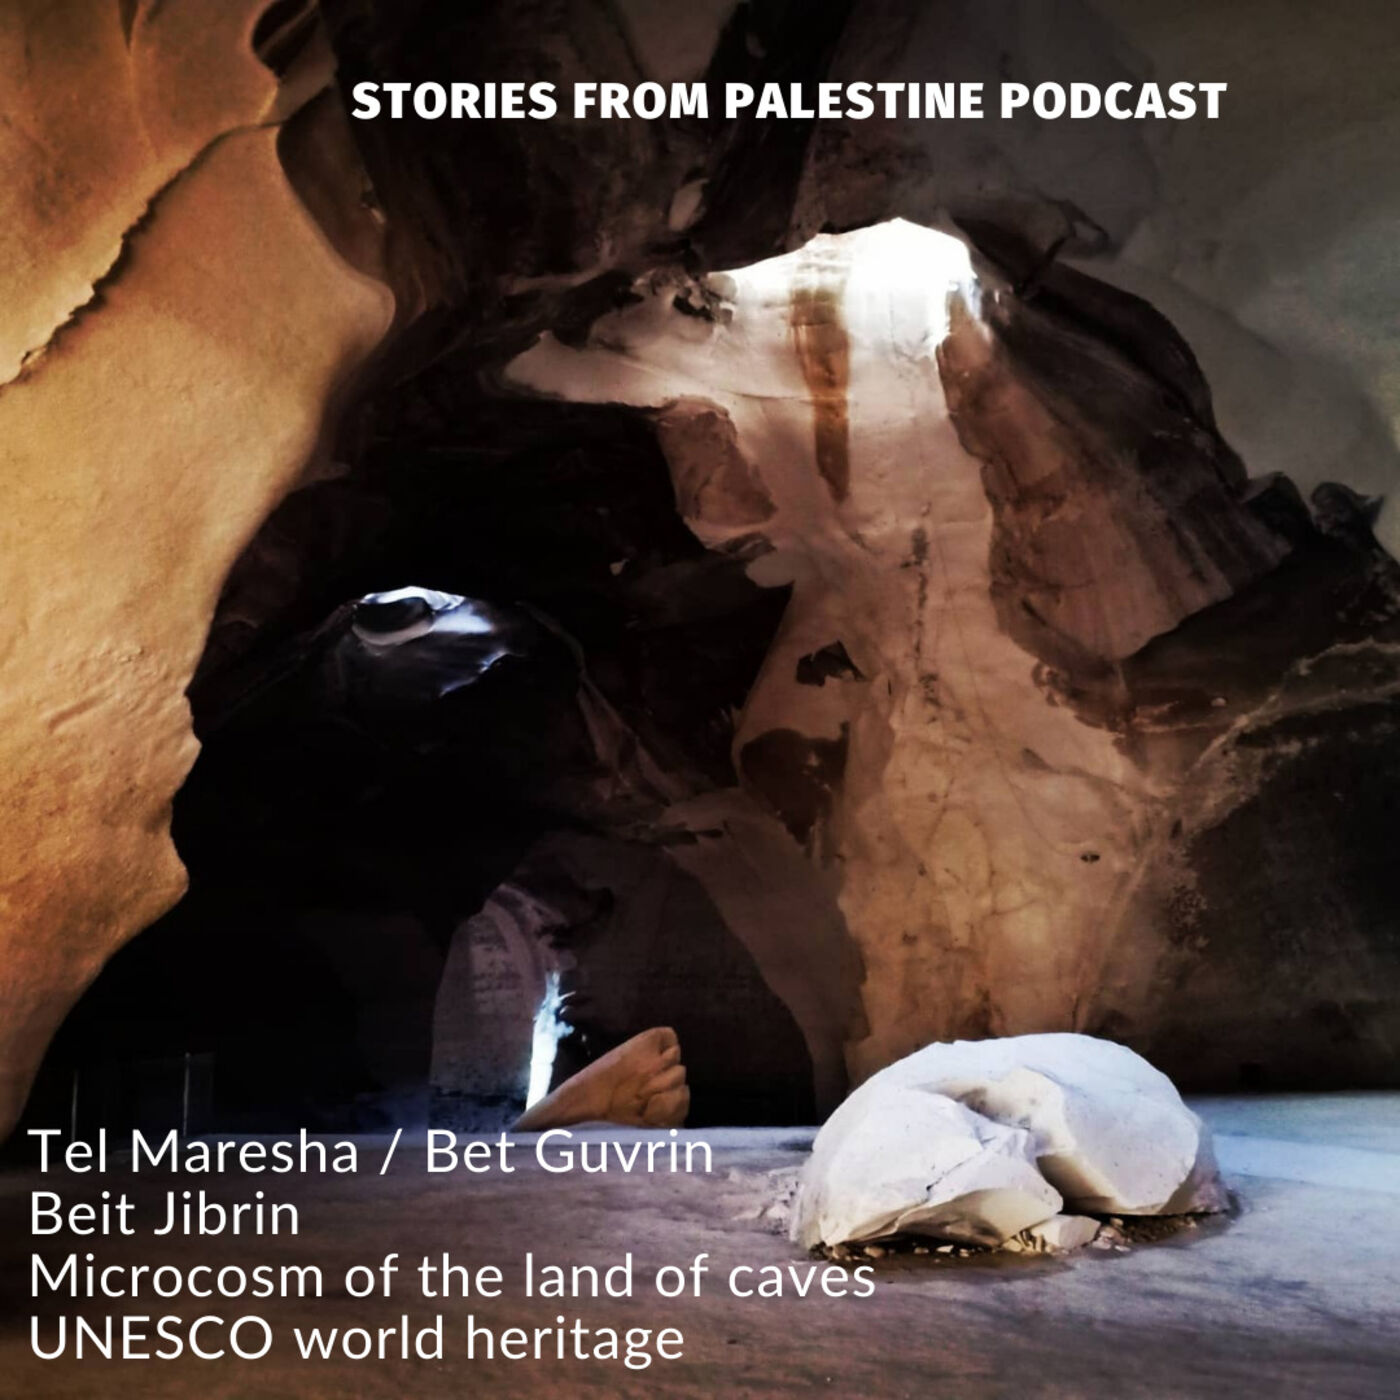 Summer shorts #2 Tel Maresha / Beit Jibrin : a microcosm of the land of caves